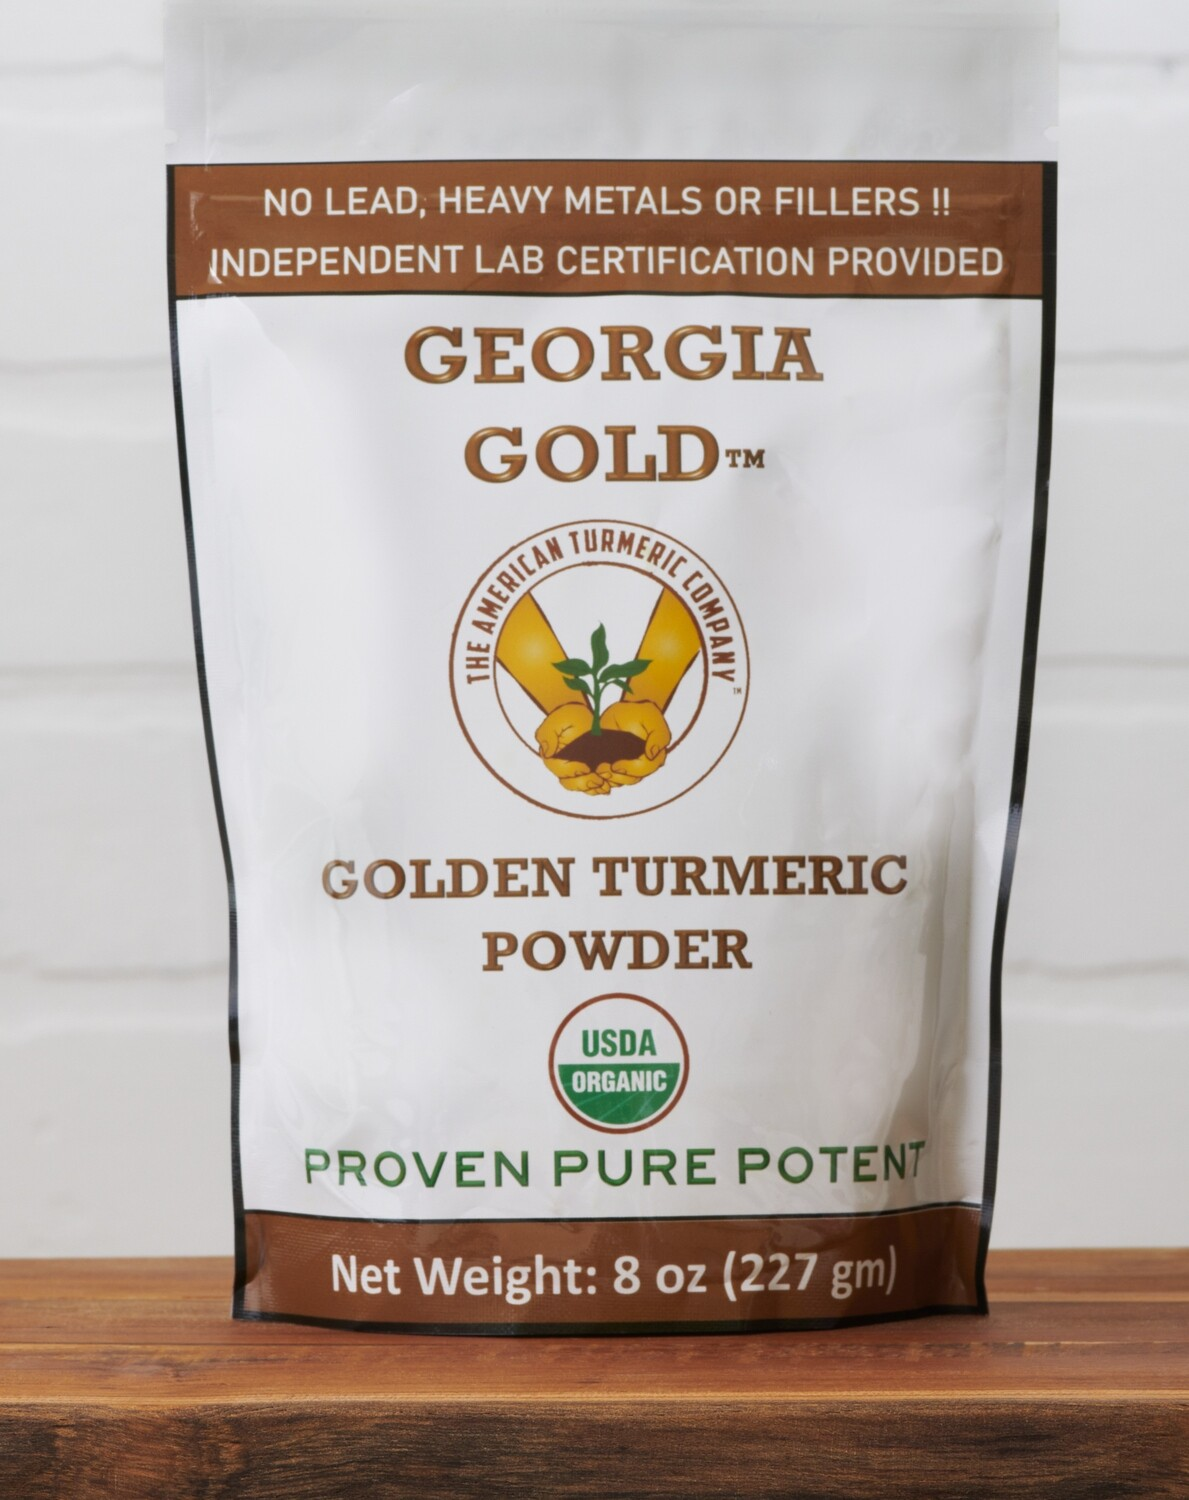 American Turmeric Powder - No Lead - Lab Results Included - 1/2 pound. Now with Discounts - USDA Organically Certified - SAVE BIG!